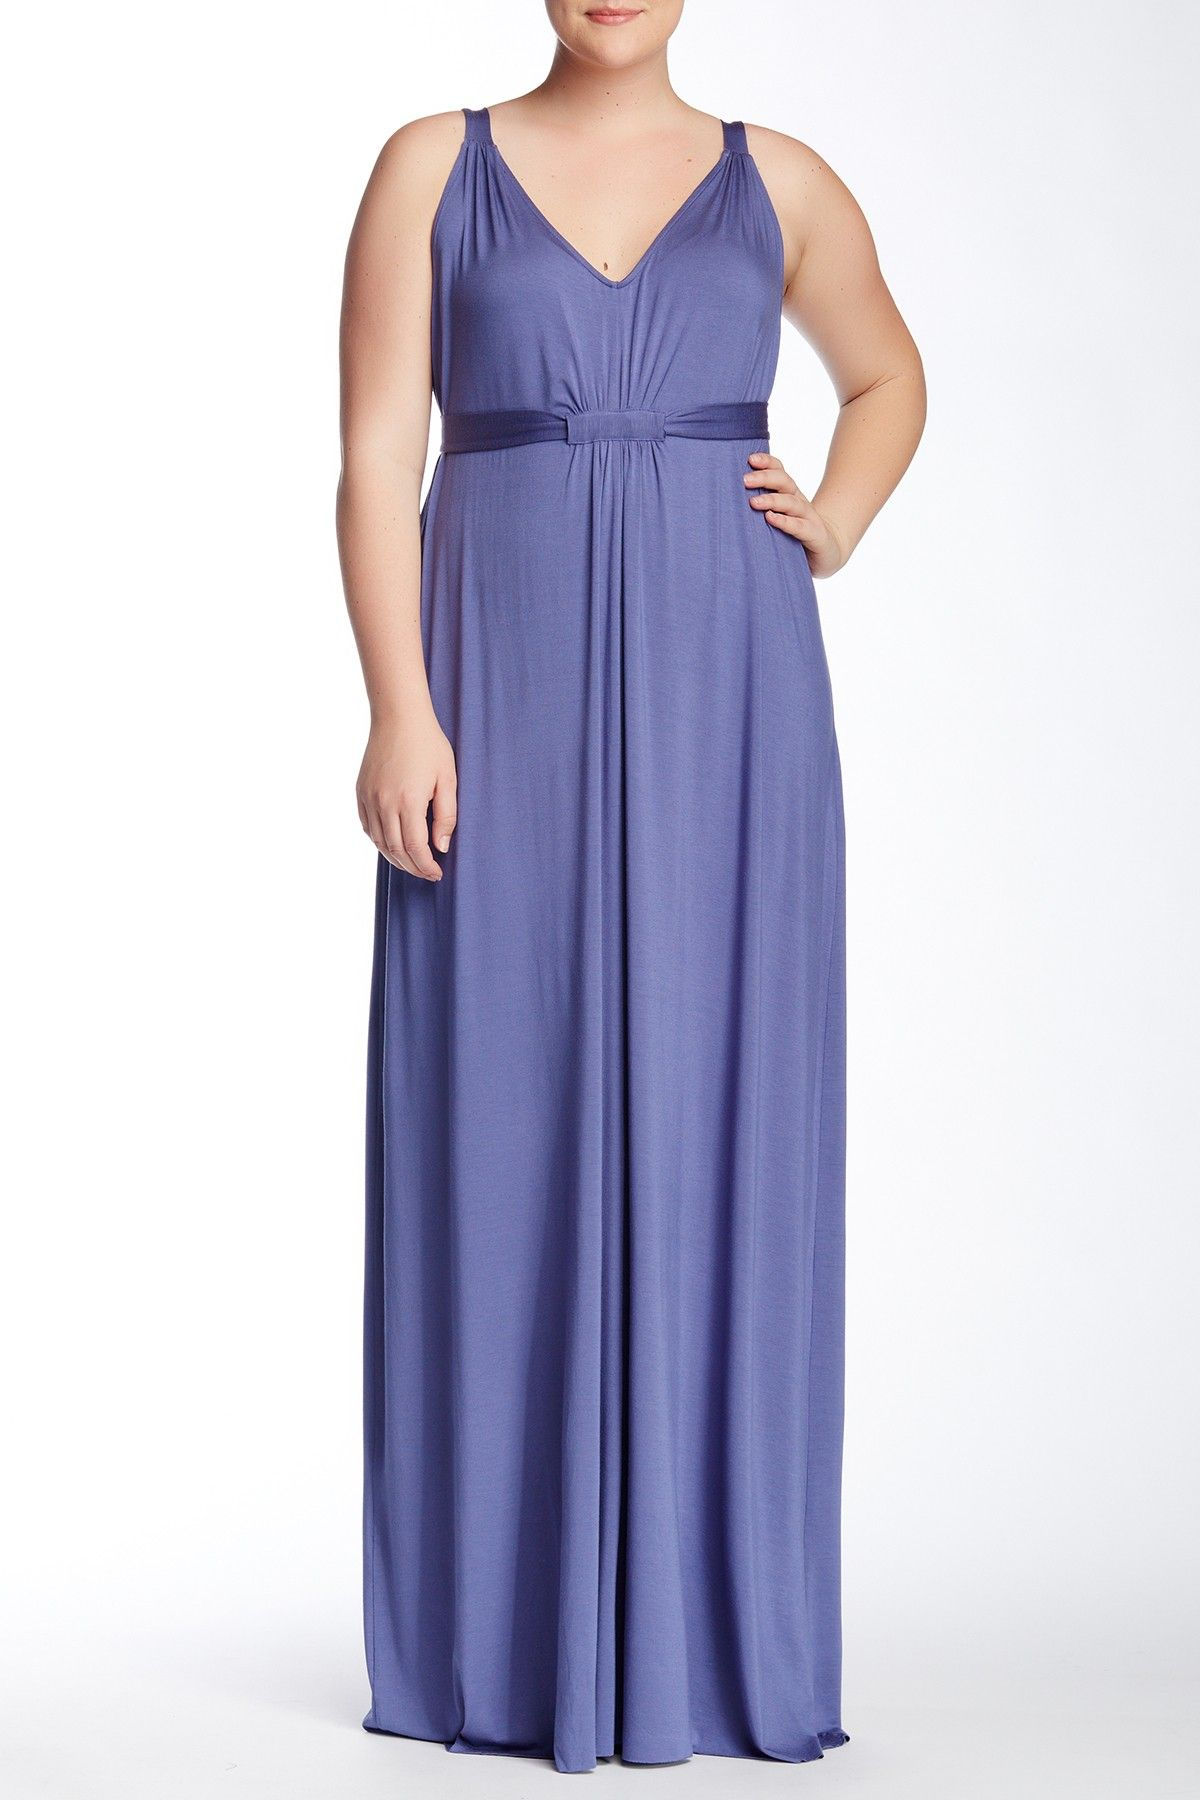 Quintana maxi dress plus size products pinterest plus size